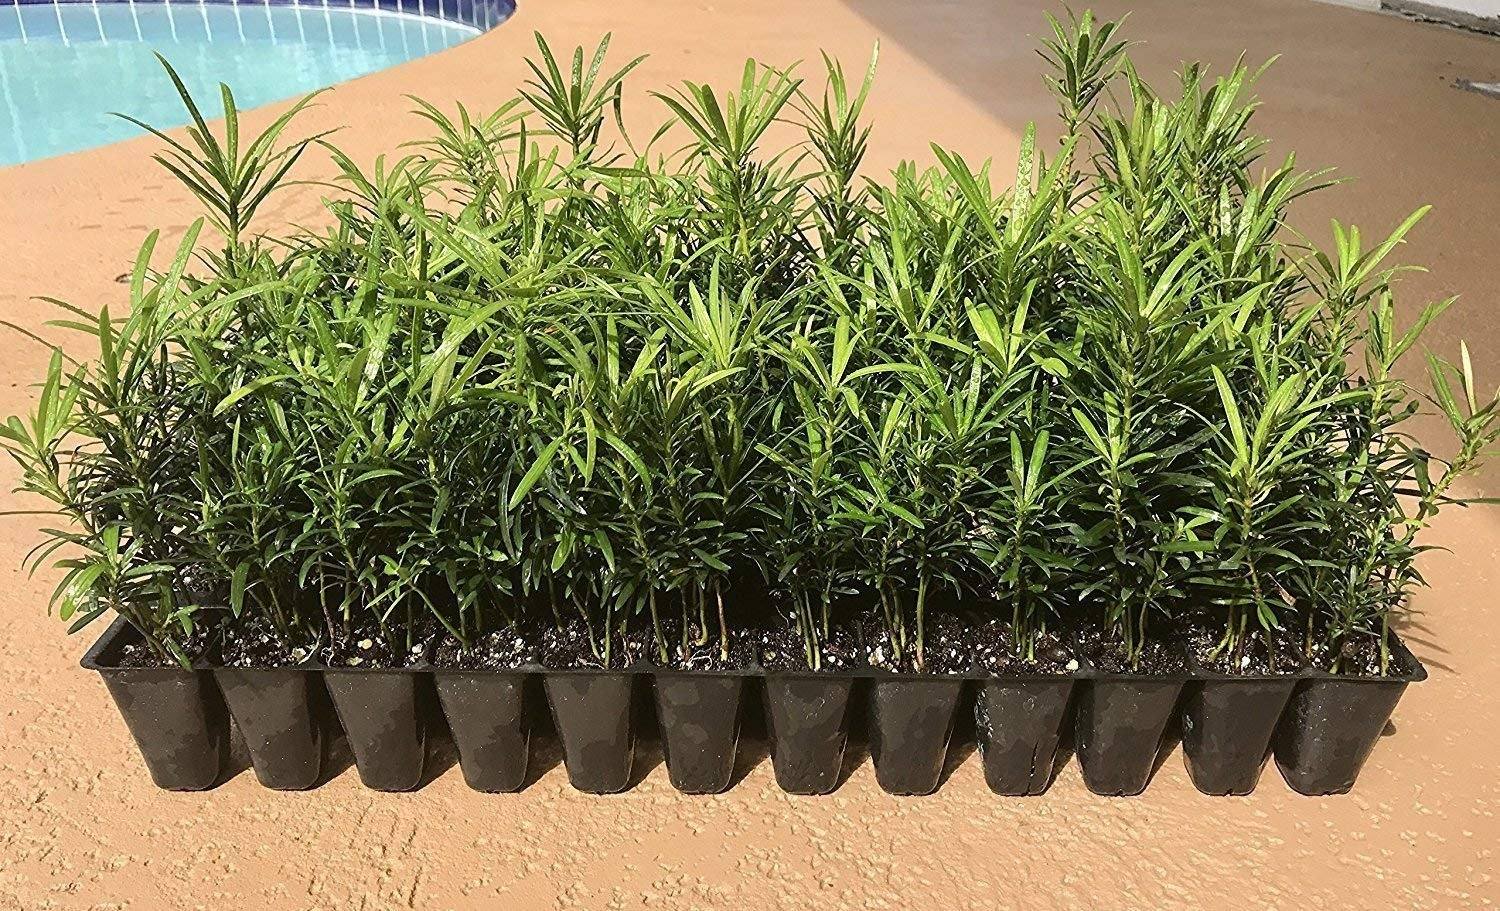 Podocarpus Macrophyllus Japanese Yew - 30 Live Plants 2'' Pots - Evergreen Privacy Hedge